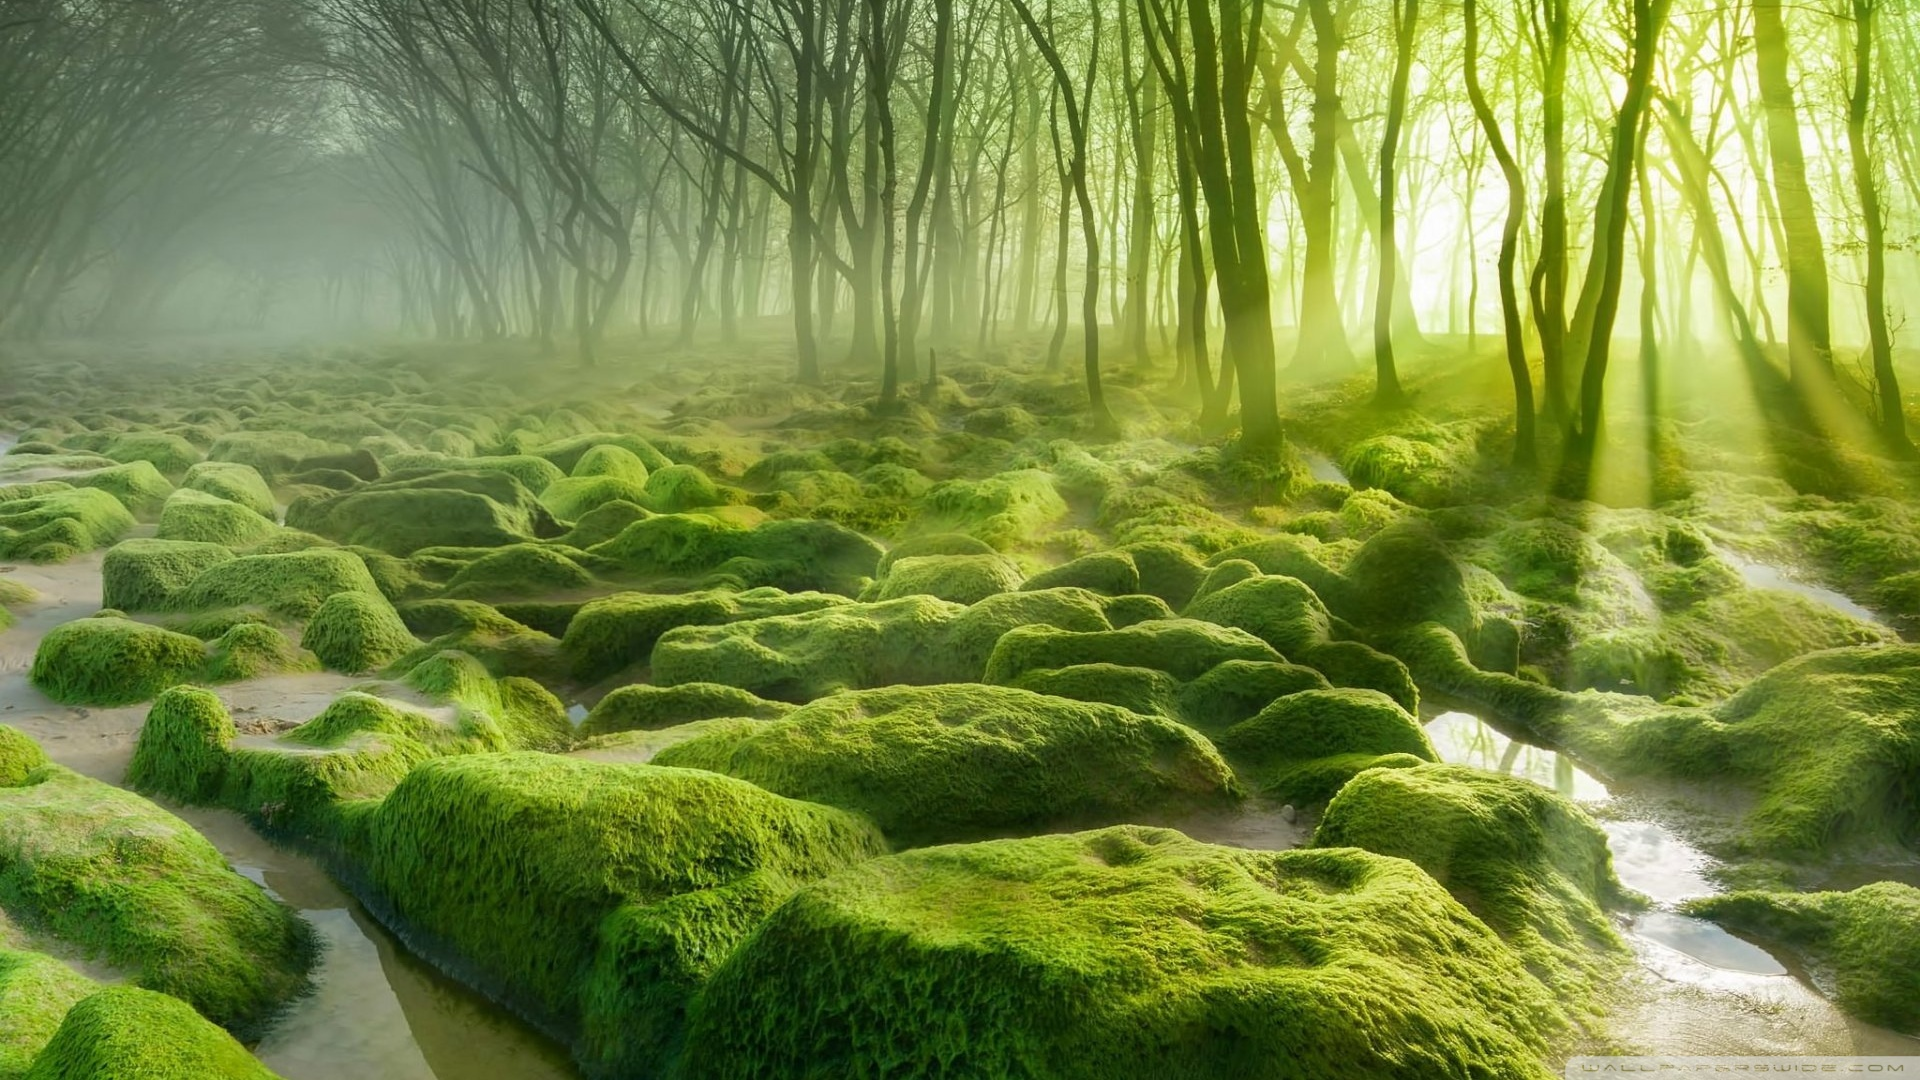 green_forest_2-wallpaper-1920x1080